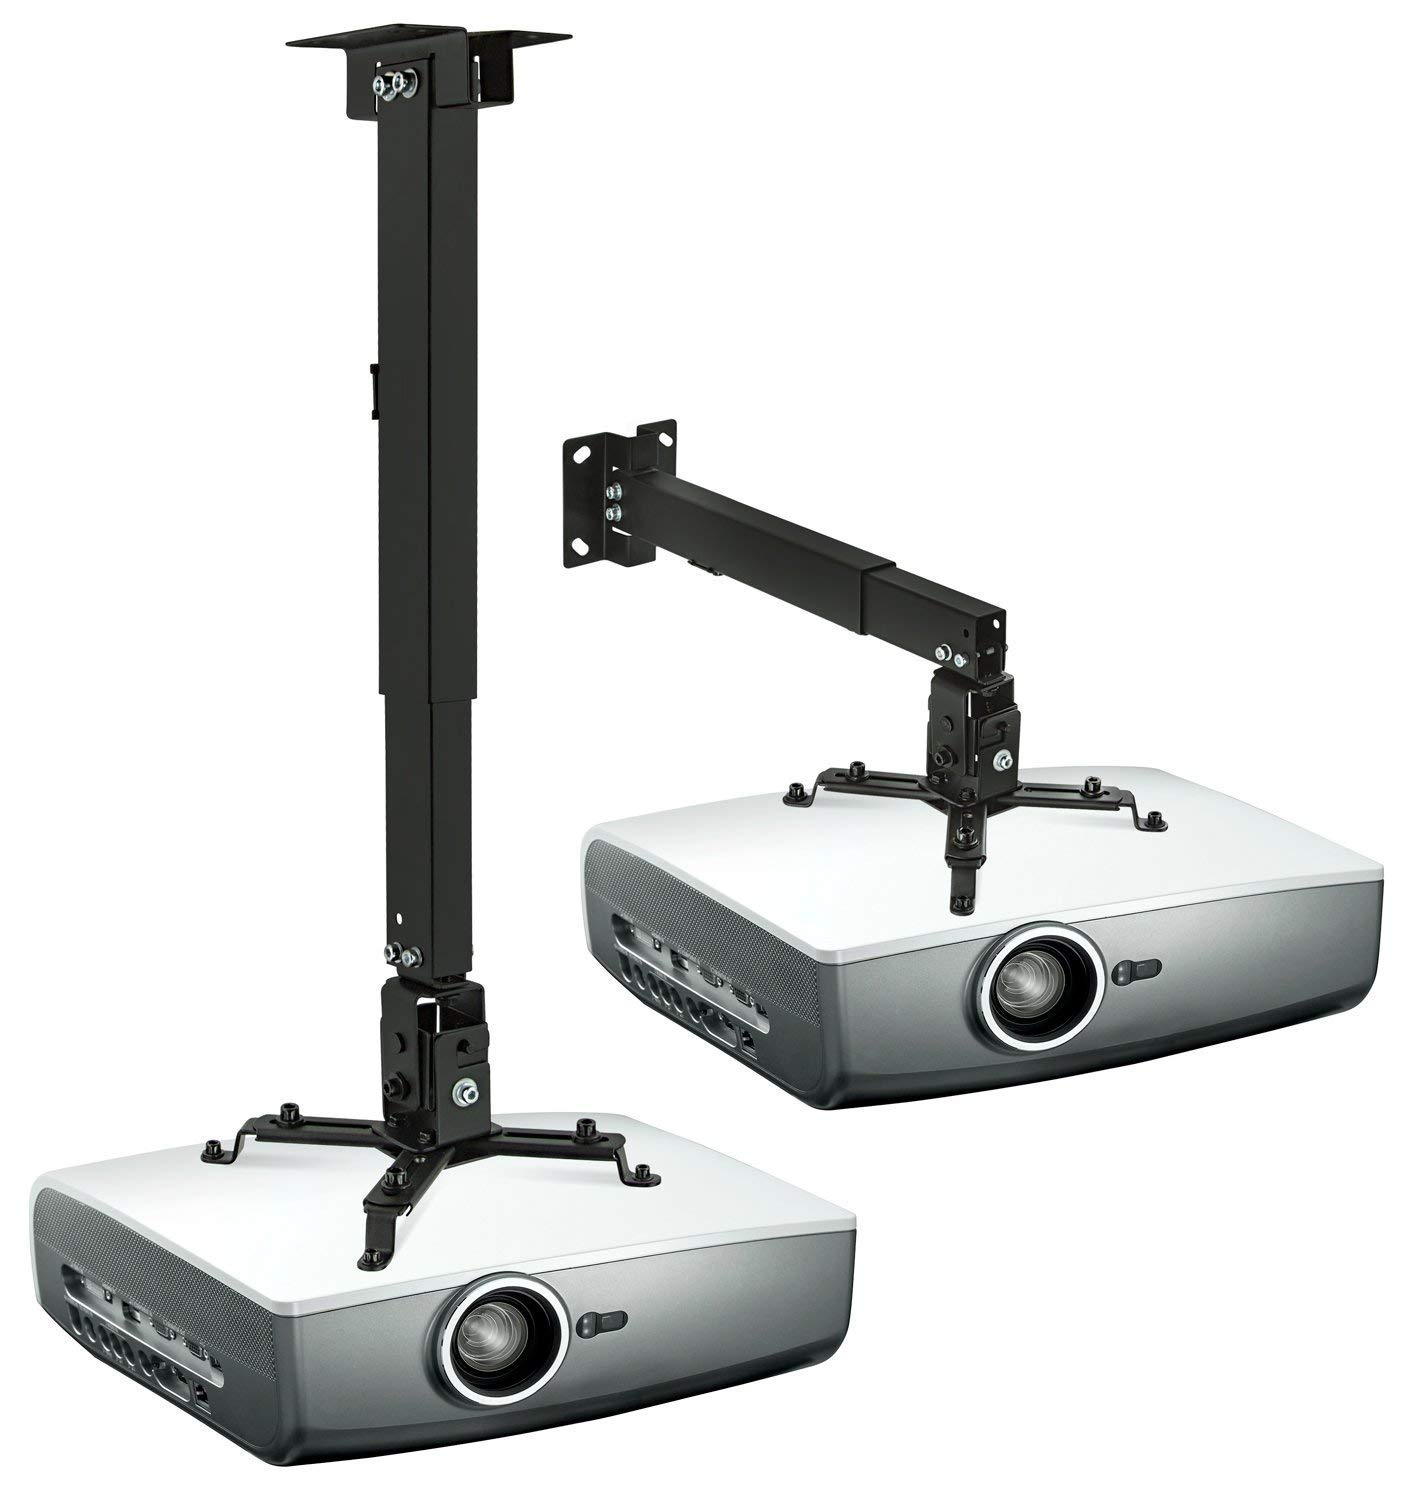 Universal Projector Ceiling Mount,LANMI Adjustable Mount,Length can be adjusted,17''-25.56'',for LCD/DLP Ceiling Projector Epson Optoma Benq ViewSonic(4365.black)